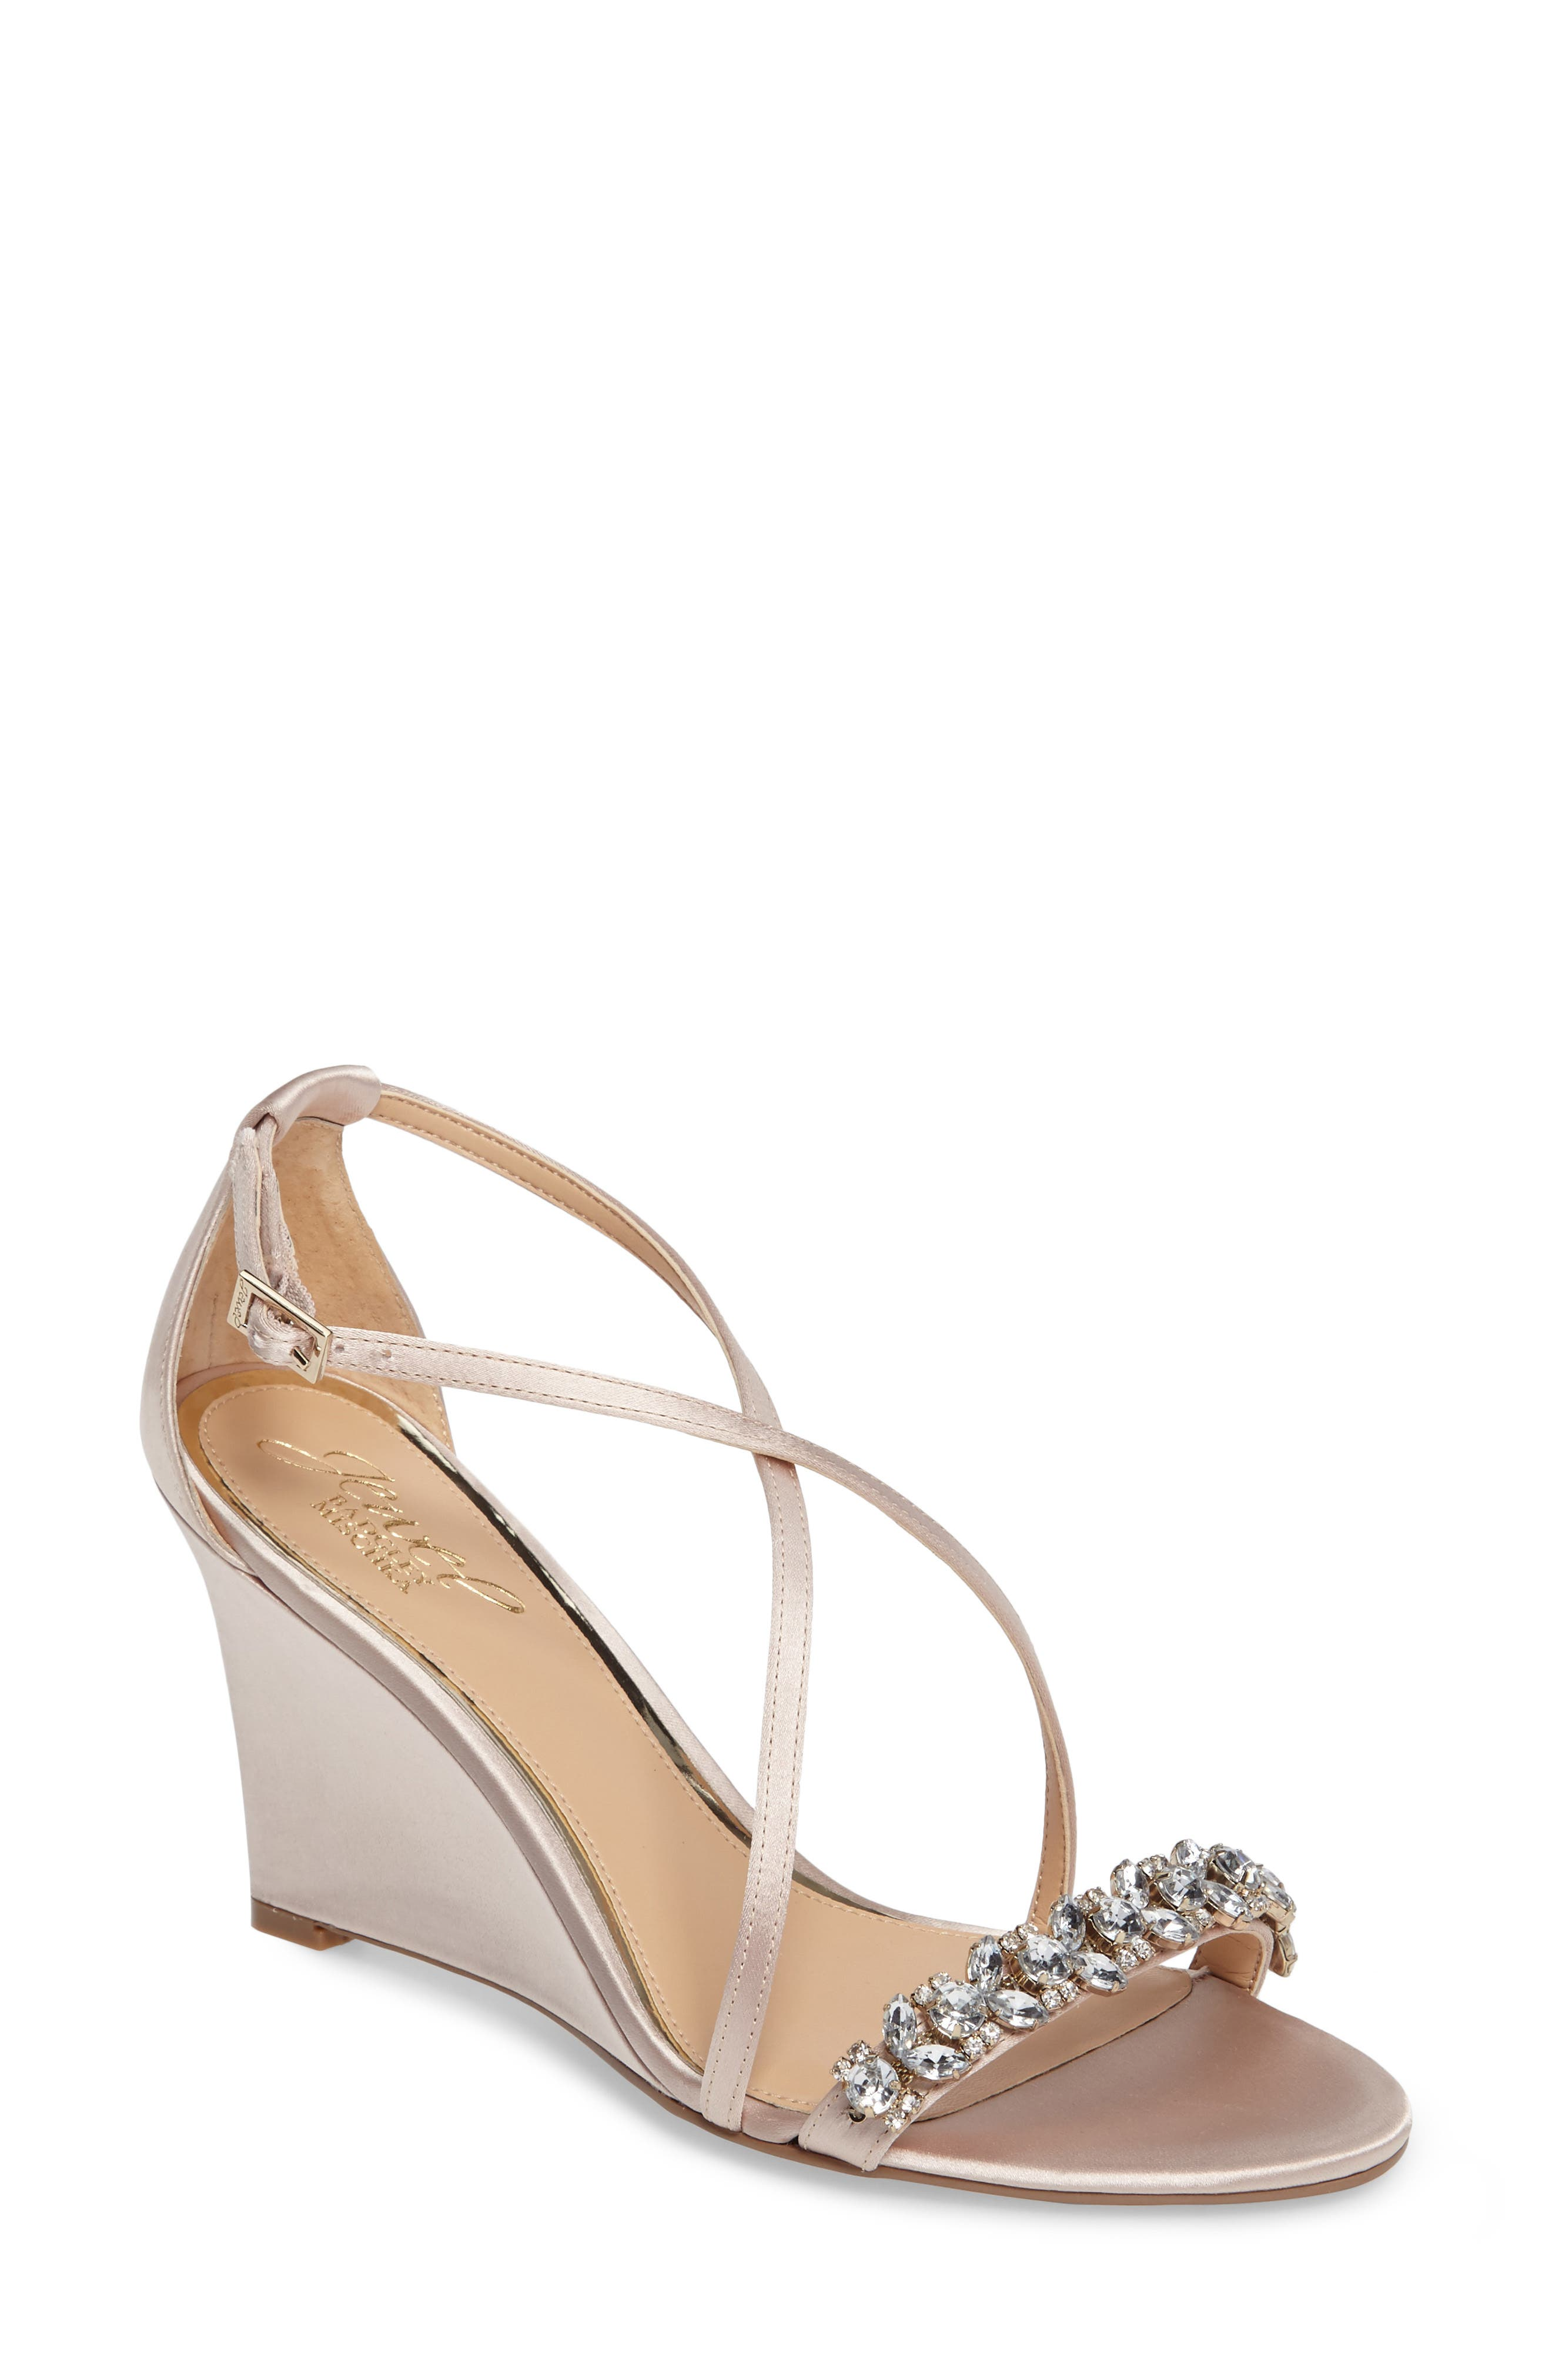 Embellished Strappy Wedge Sandal,                             Main thumbnail 3, color,